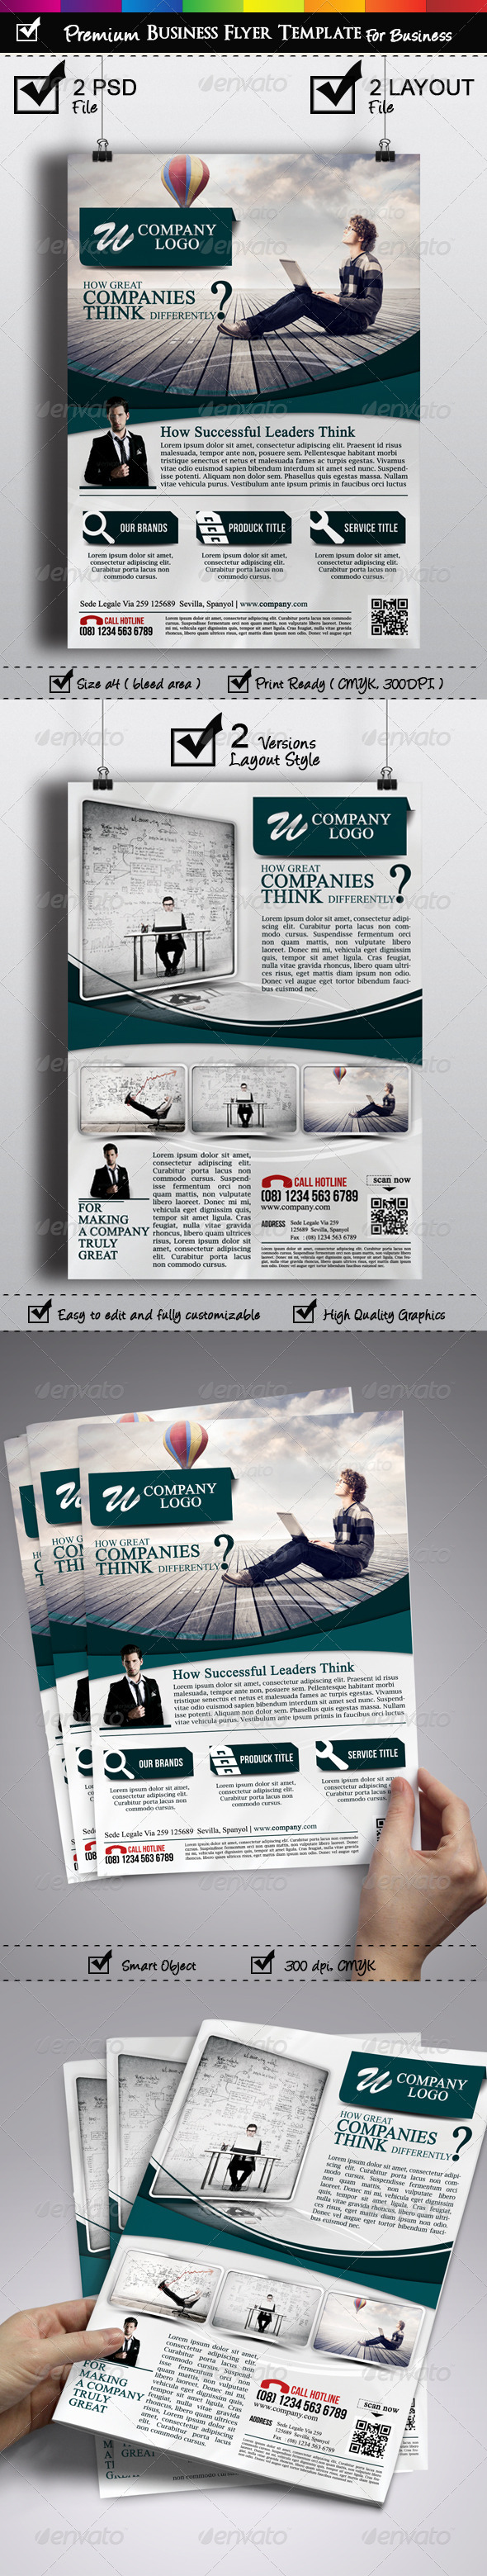 Premium Business Flyer Template 2 Versions - Corporate Flyers